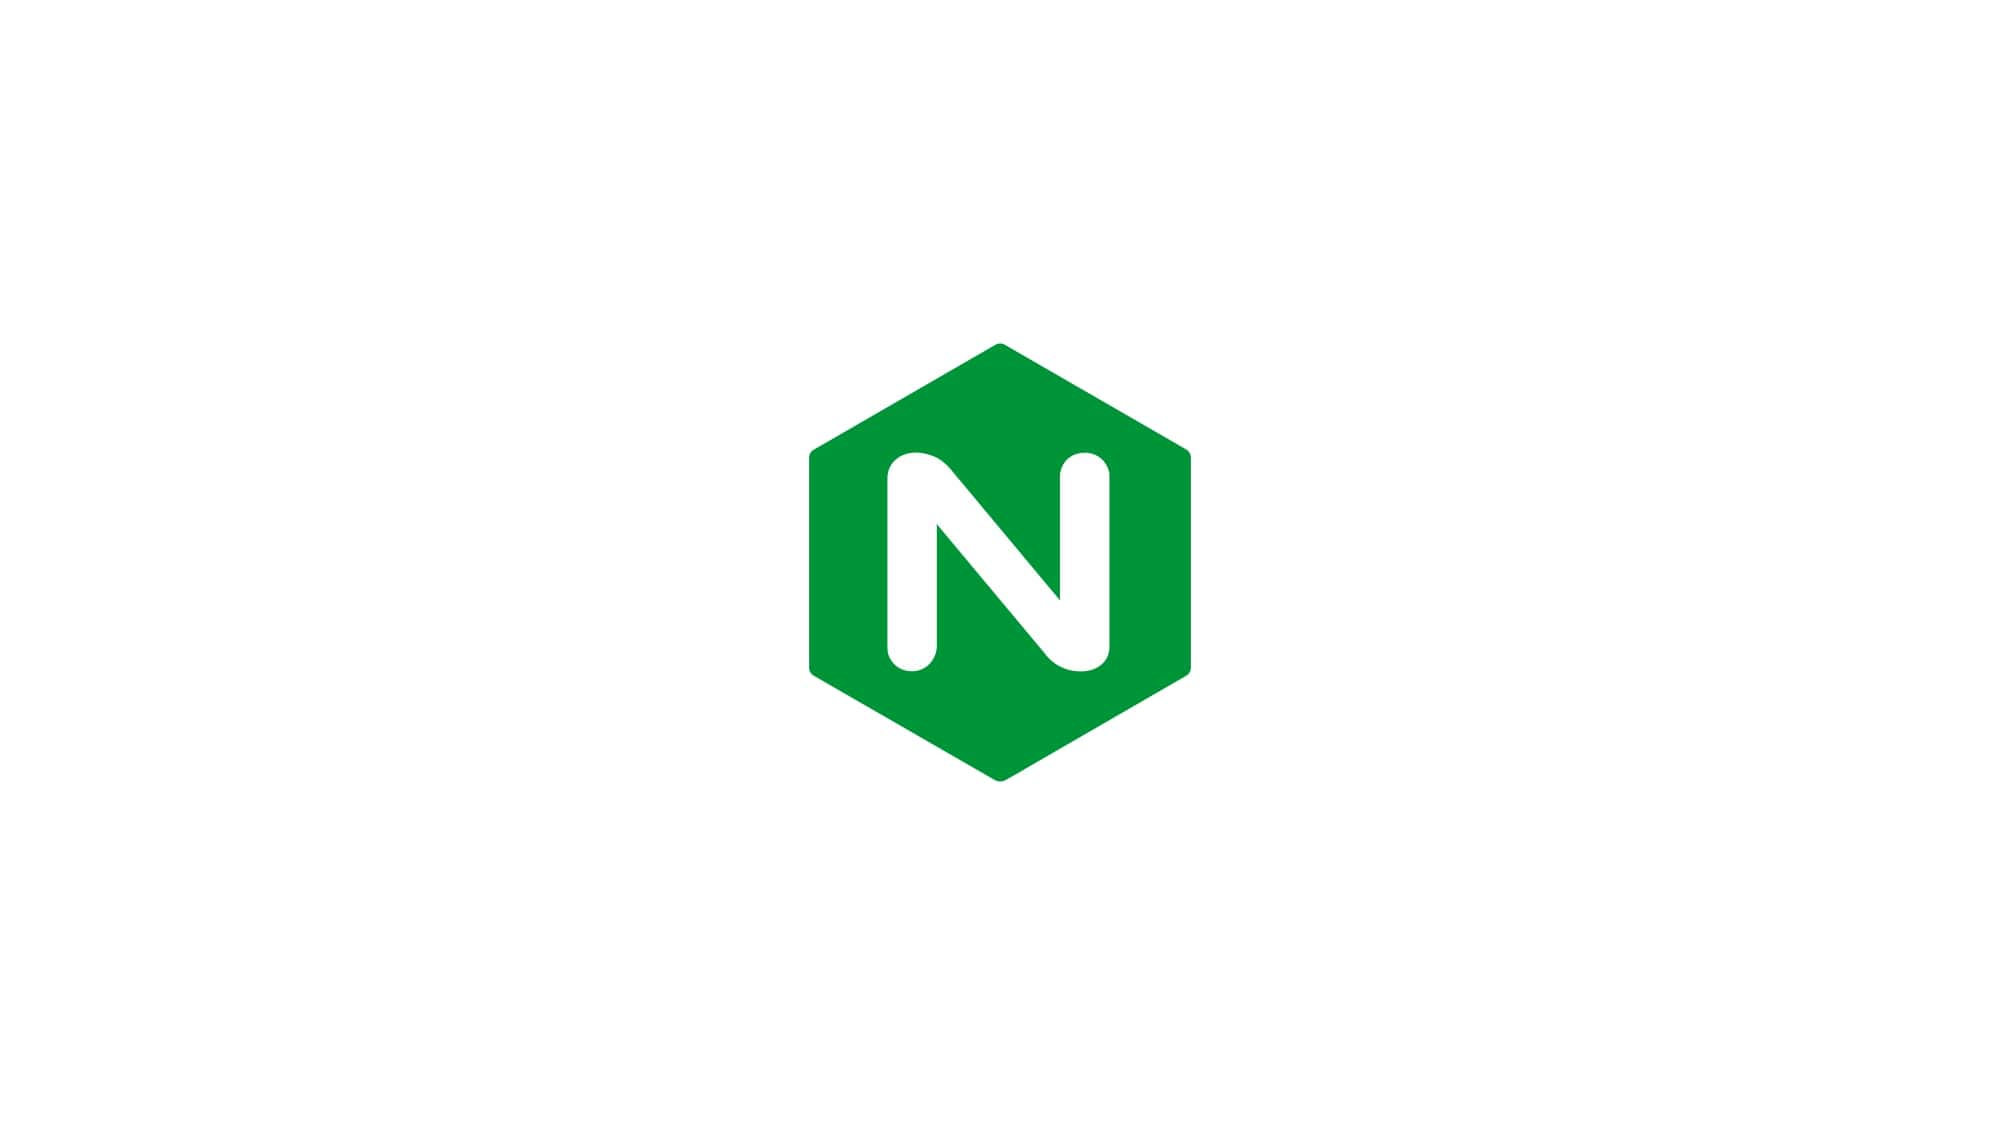 Come installare Nginx Server Blocks (Virtual Hosts) su Debian 10